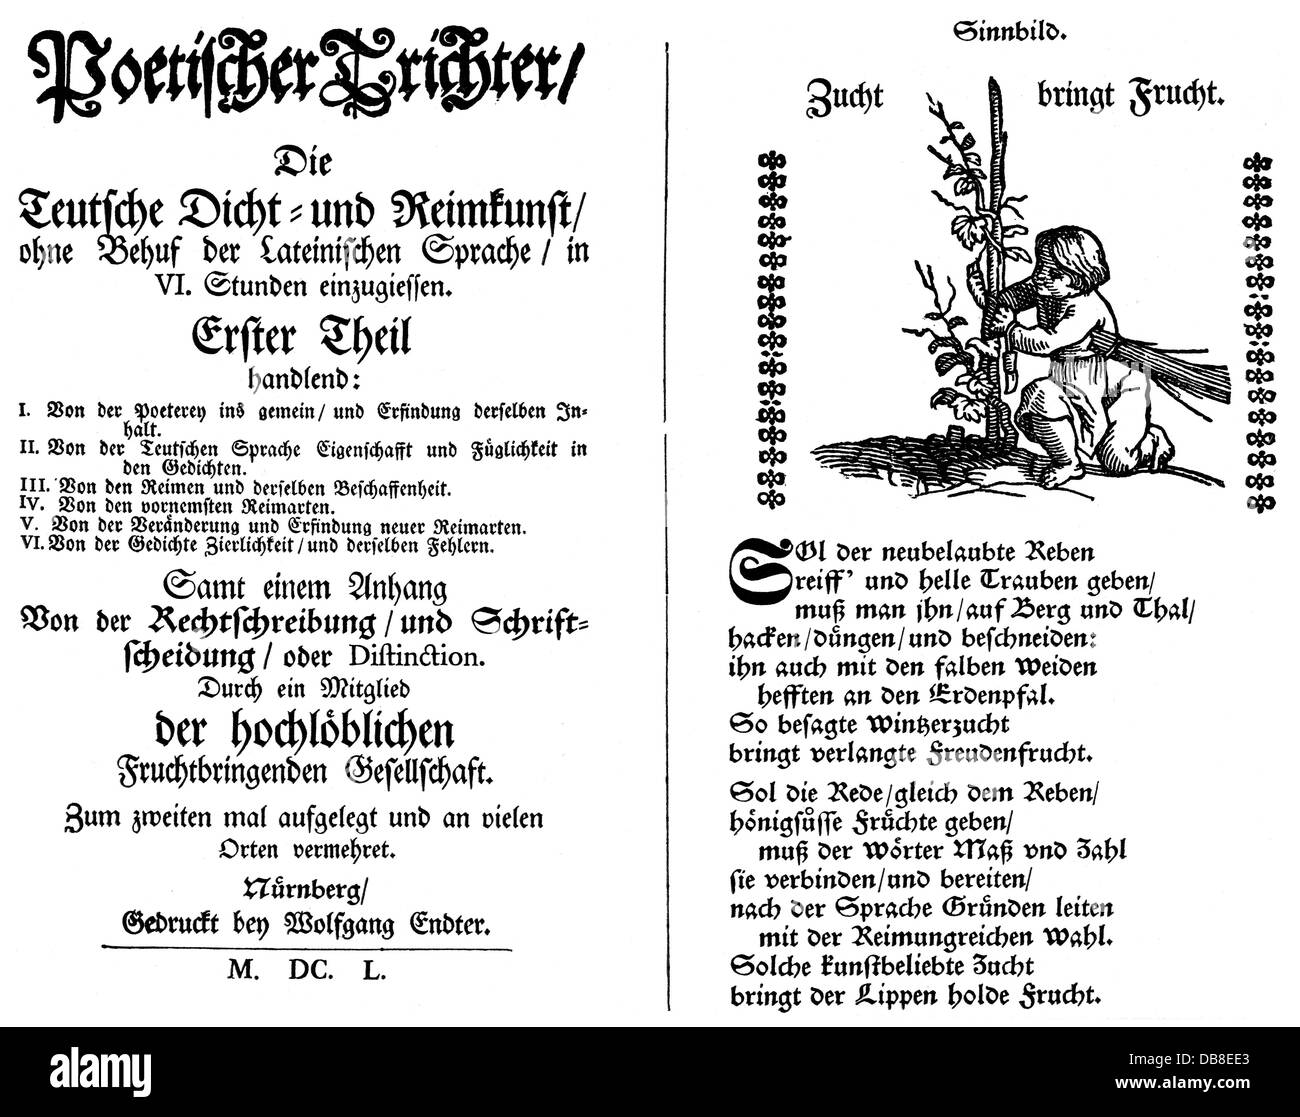 literature, titles and title pages, 'Poetic Funnel' (Poetischer Trichter) published by Georg Philipp Harsdörffer - Stock Image